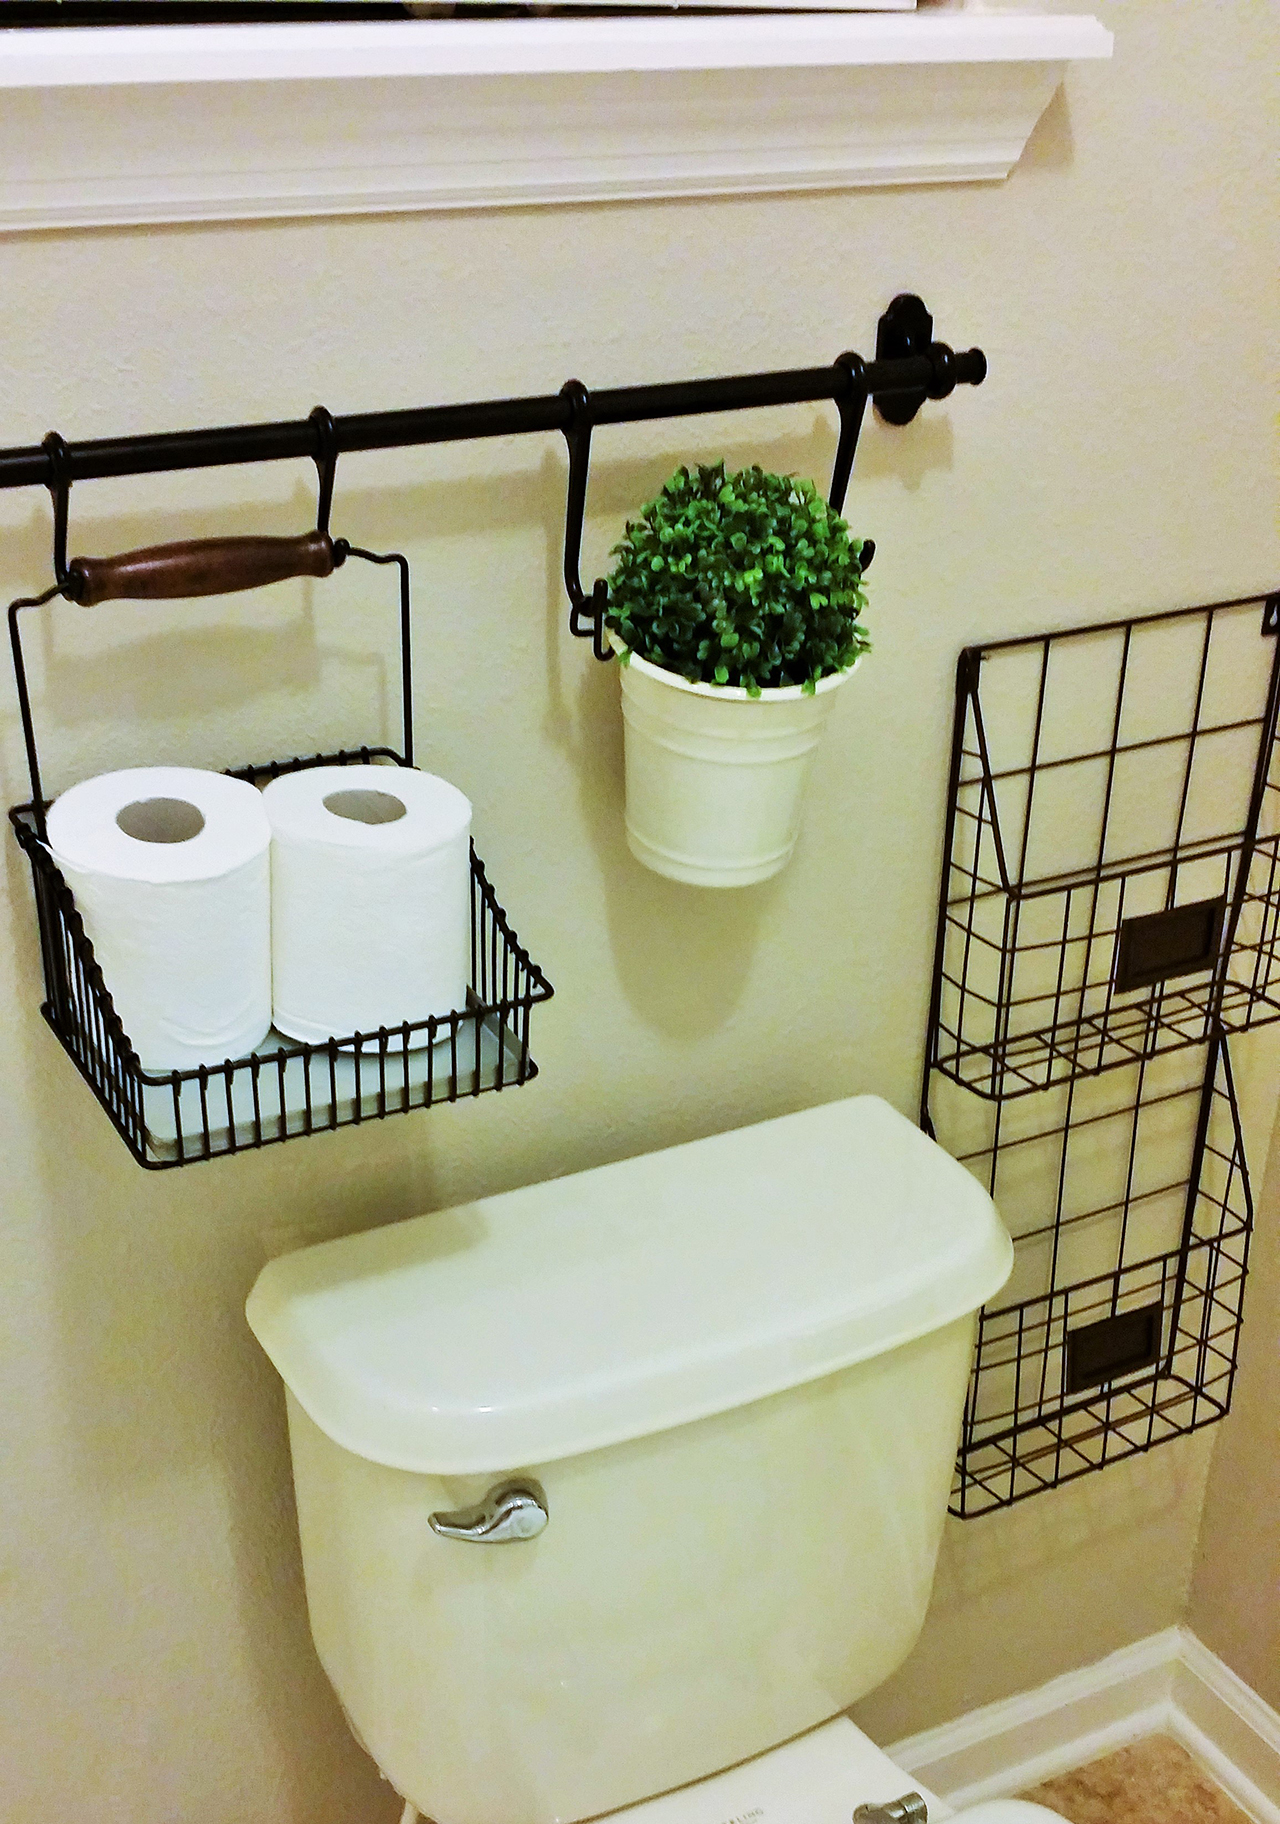 2 wall mounted wire storage baskets